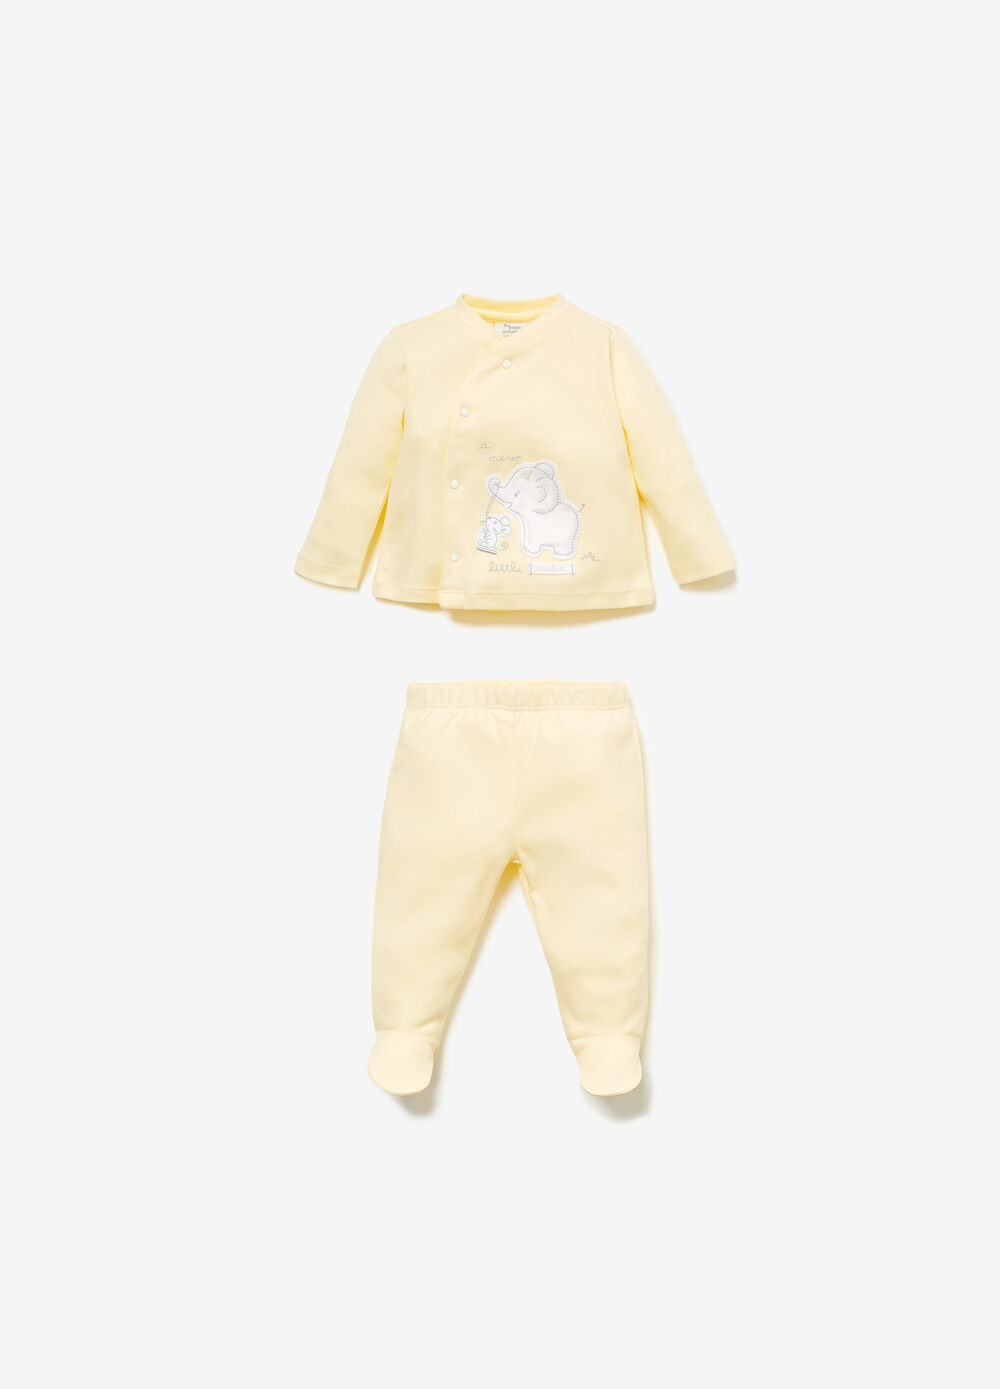 100% cotton outfit with animal patch